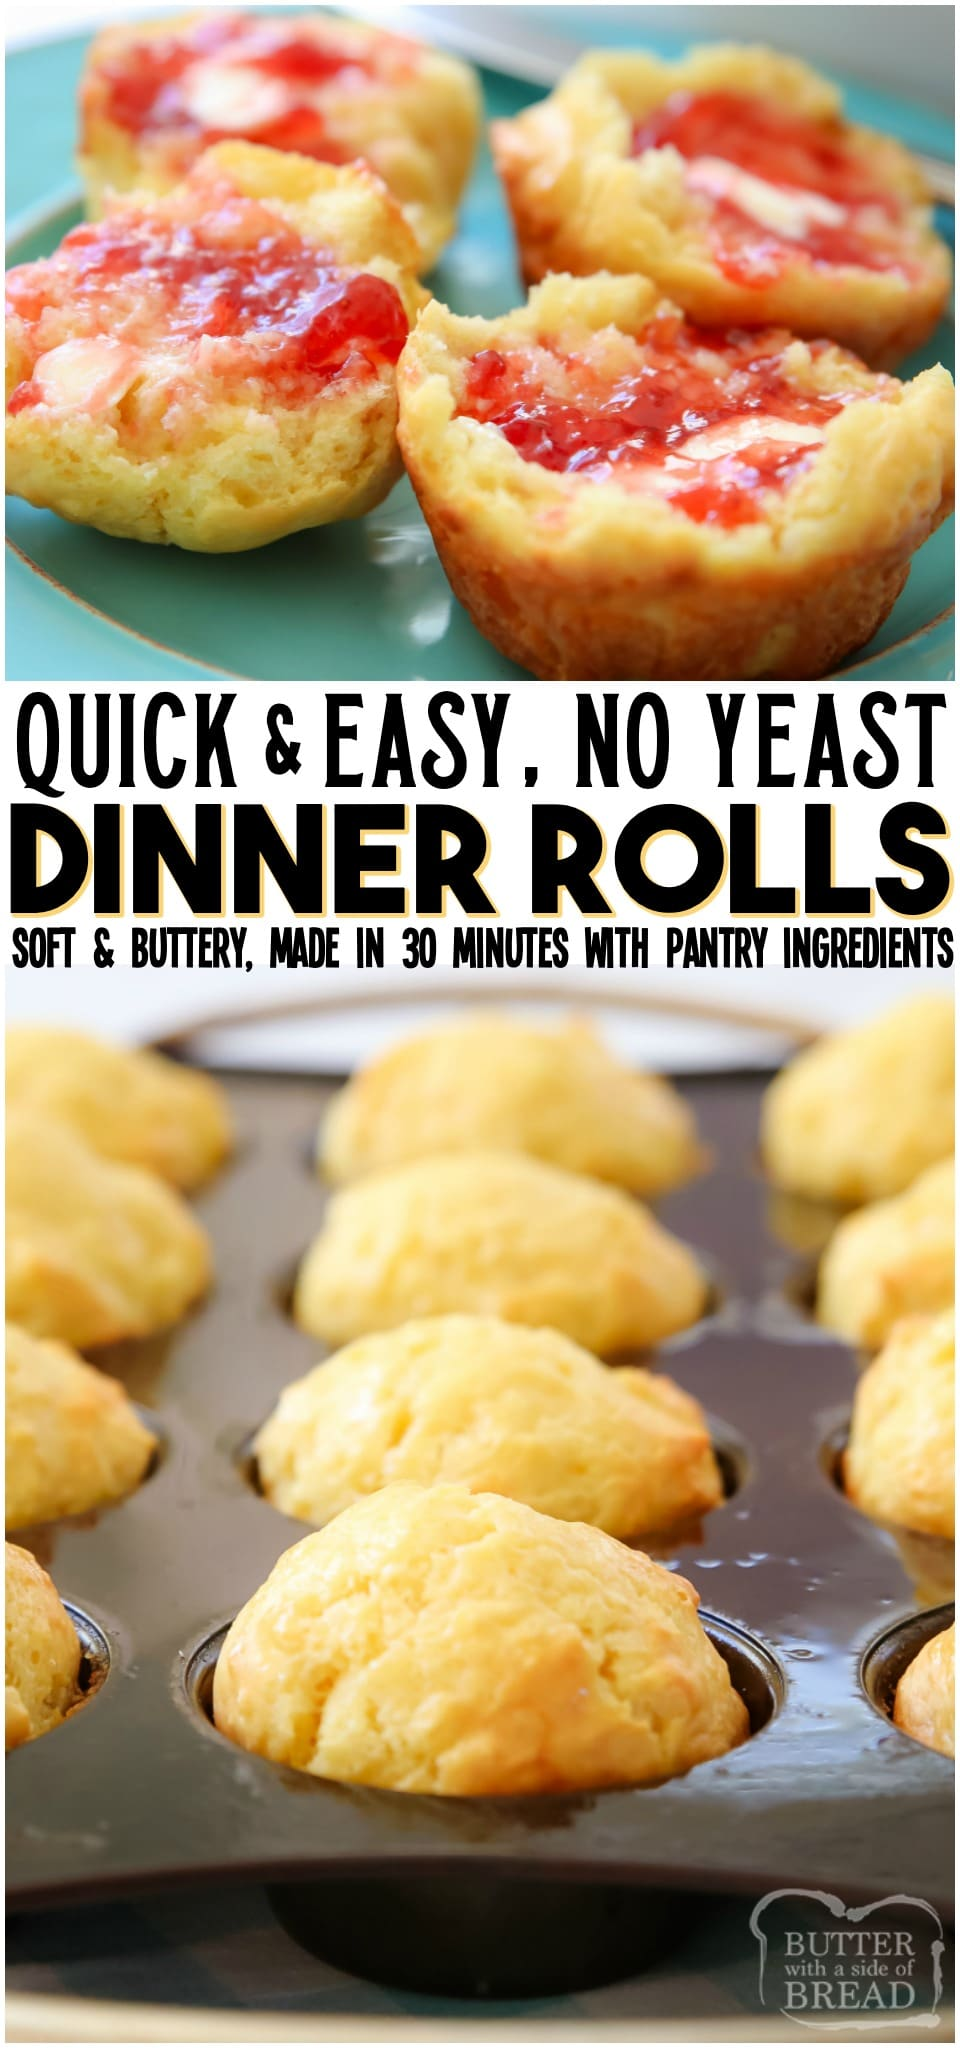 Easy Dinner Rolls made from scratch in minutes with no yeast! Perfect soft rolls with fantastic buttery flavor that require no yeast, no rising, no kneading or shaping. Just mix, scoop and bake! #bread #rolls #noyeast #quickbread #dinnerrolls #dinner #Easter #easyrecipe from BUTTER WITH A SIDE OF BREAD